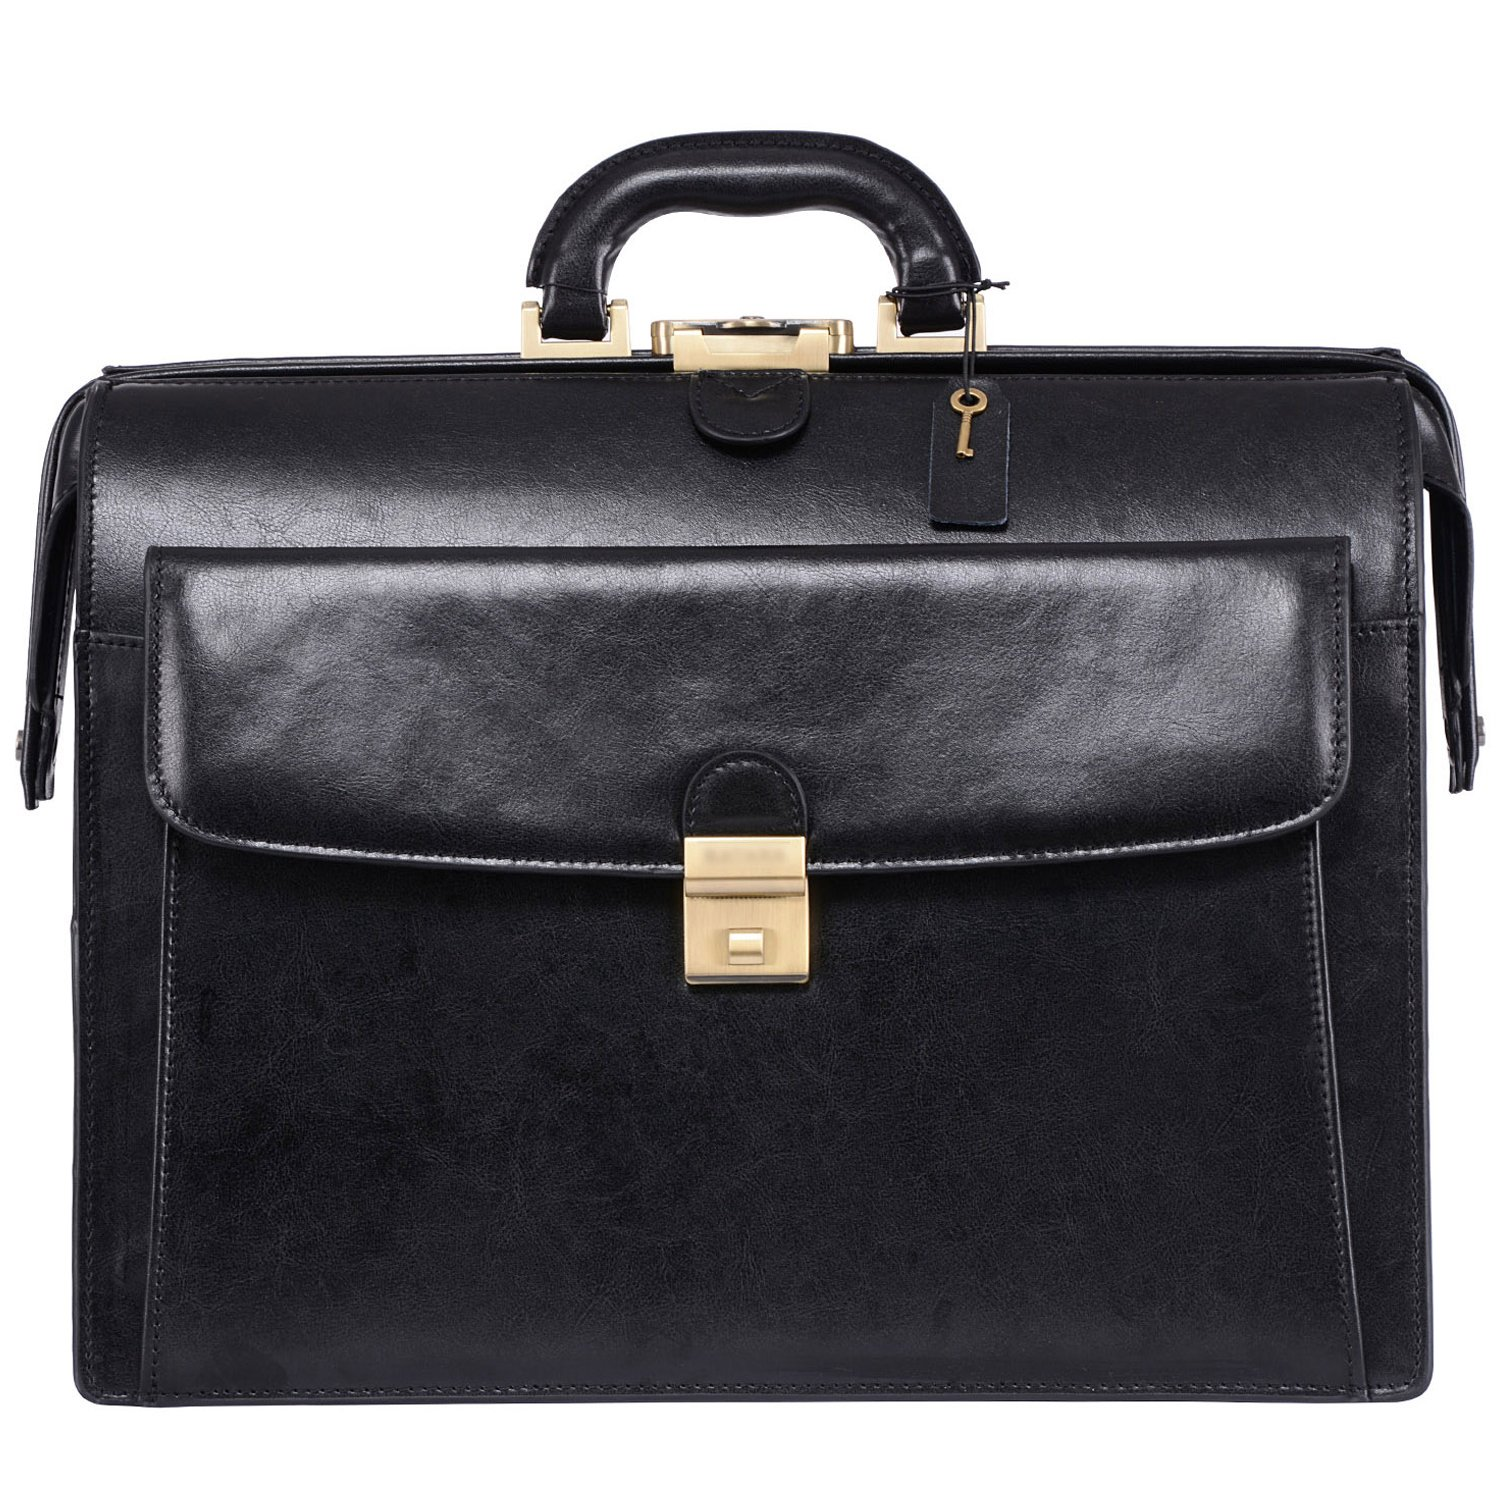 Ronts Lawyer's Leather Professional Briefcase Laptop Case(Black)